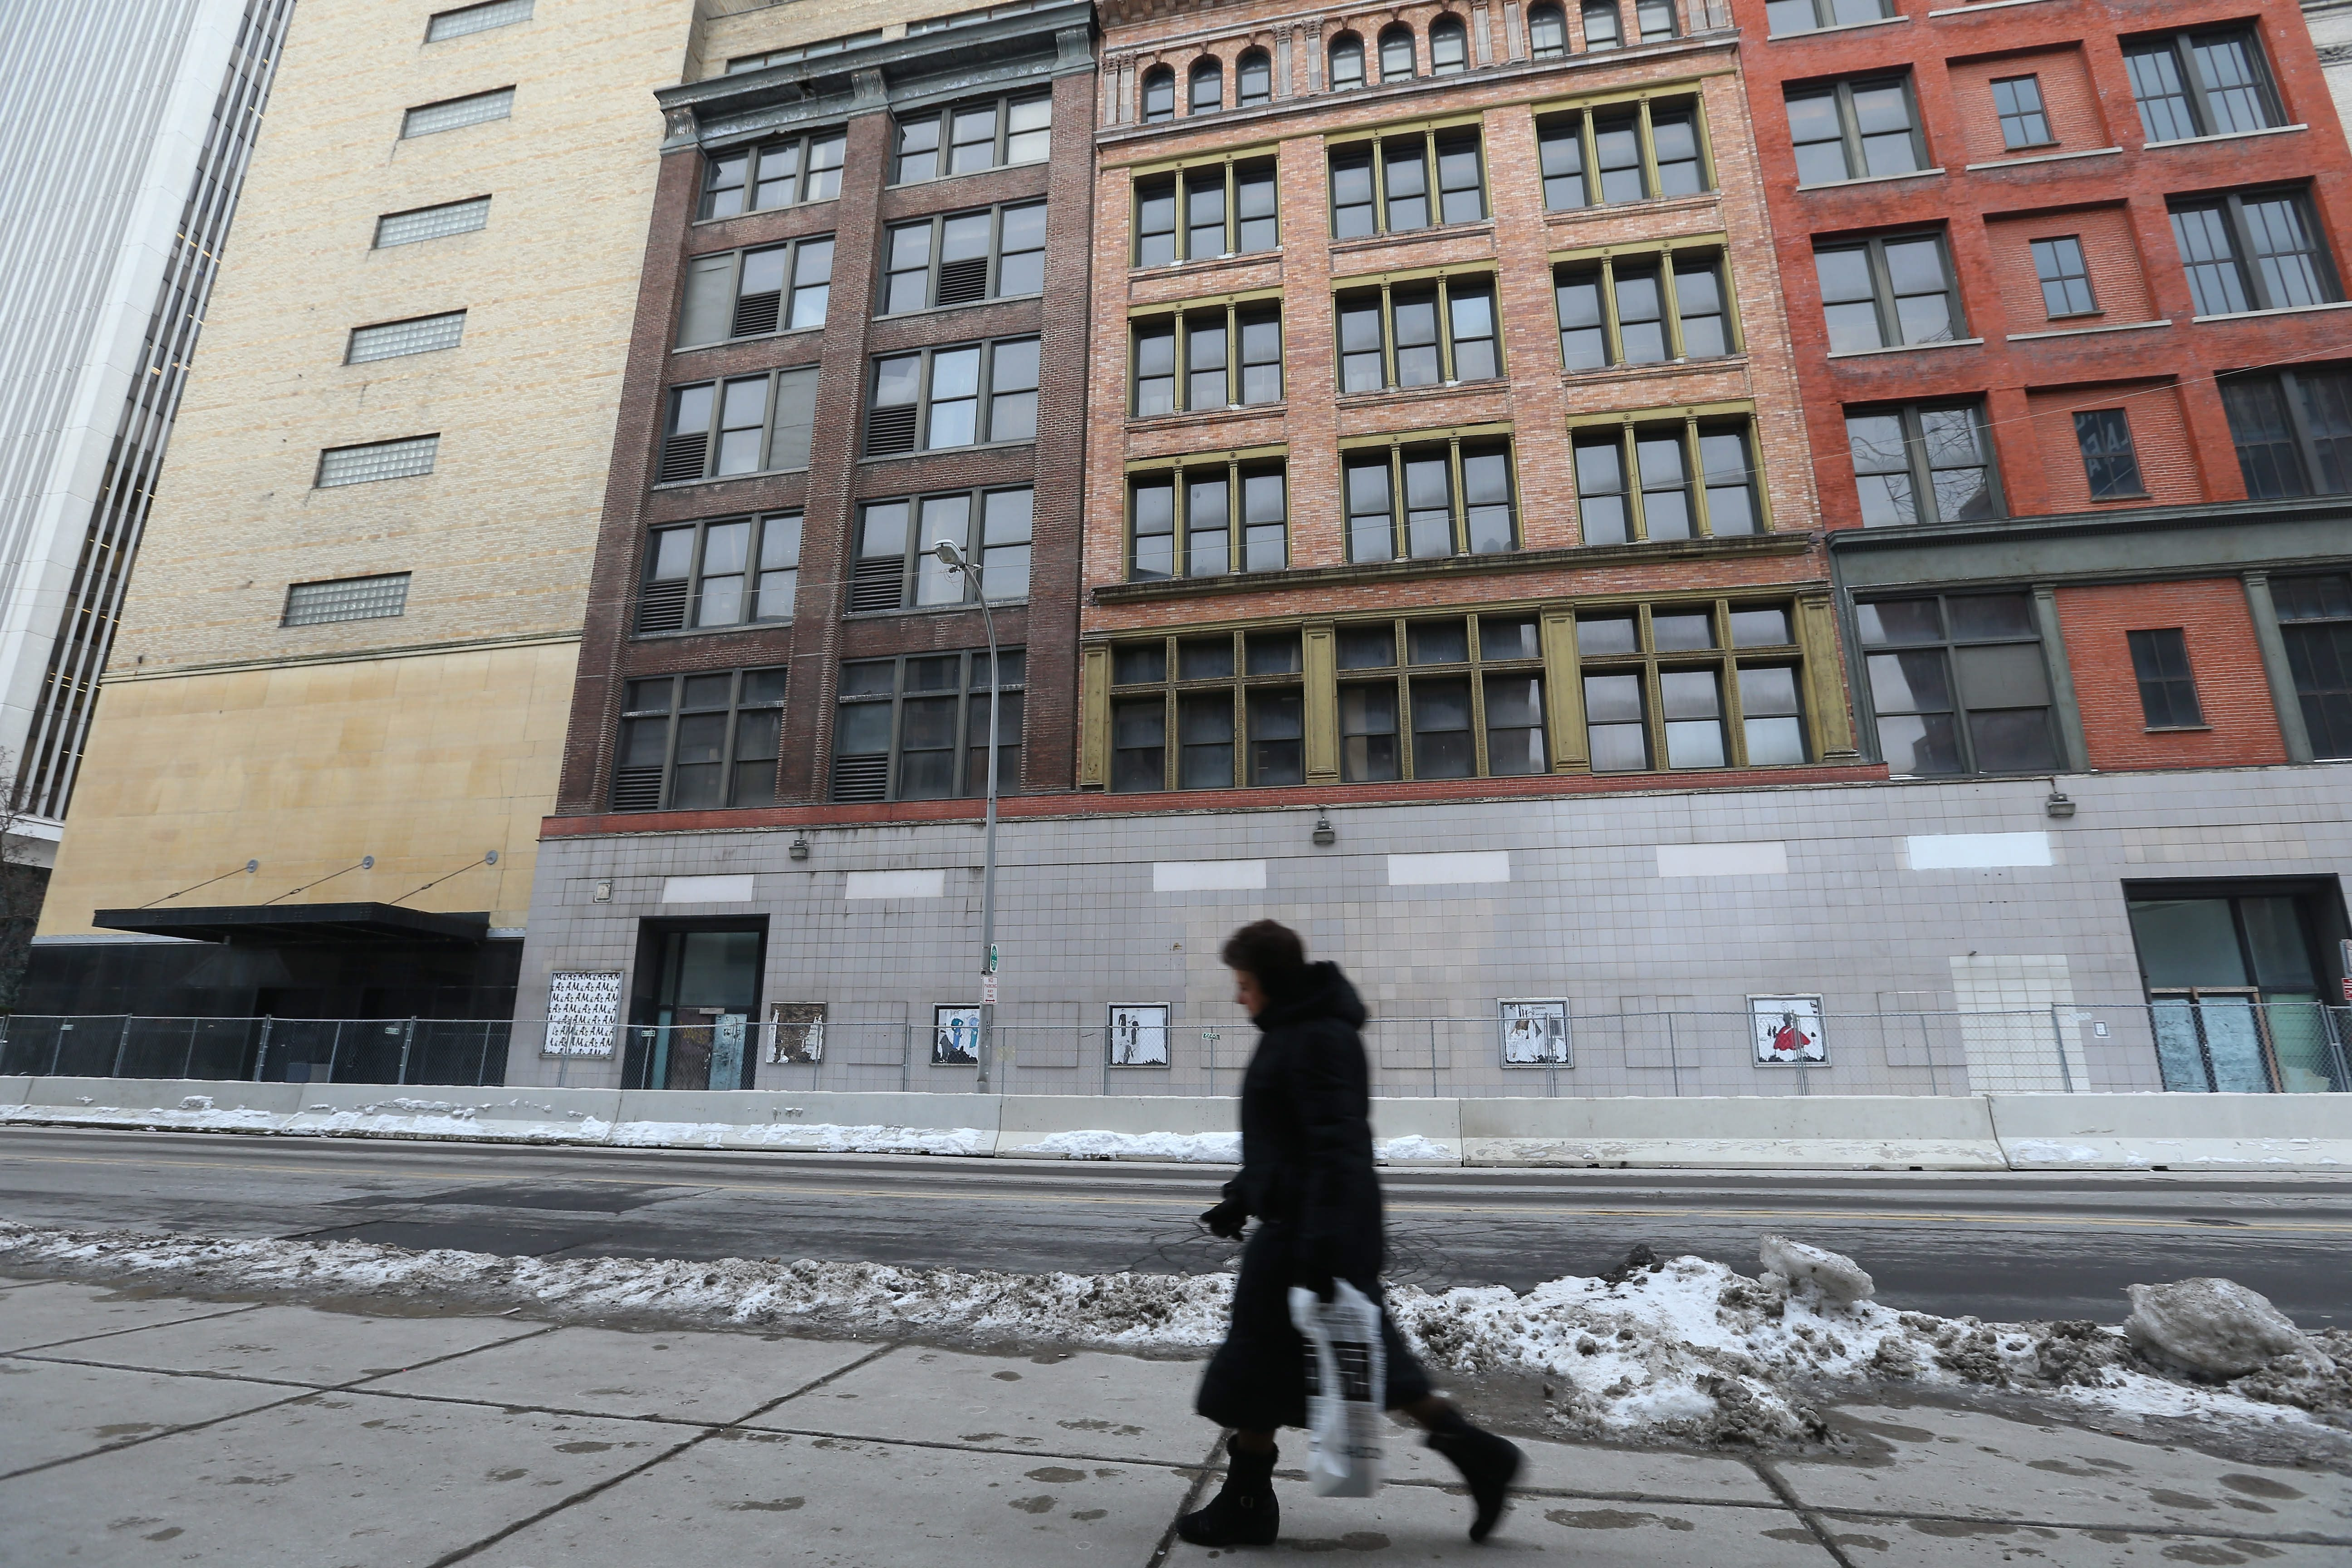 Former AM&A's department store site in downtown Buffalo is focus of ambitious plans by the new out-of-town ownership group.